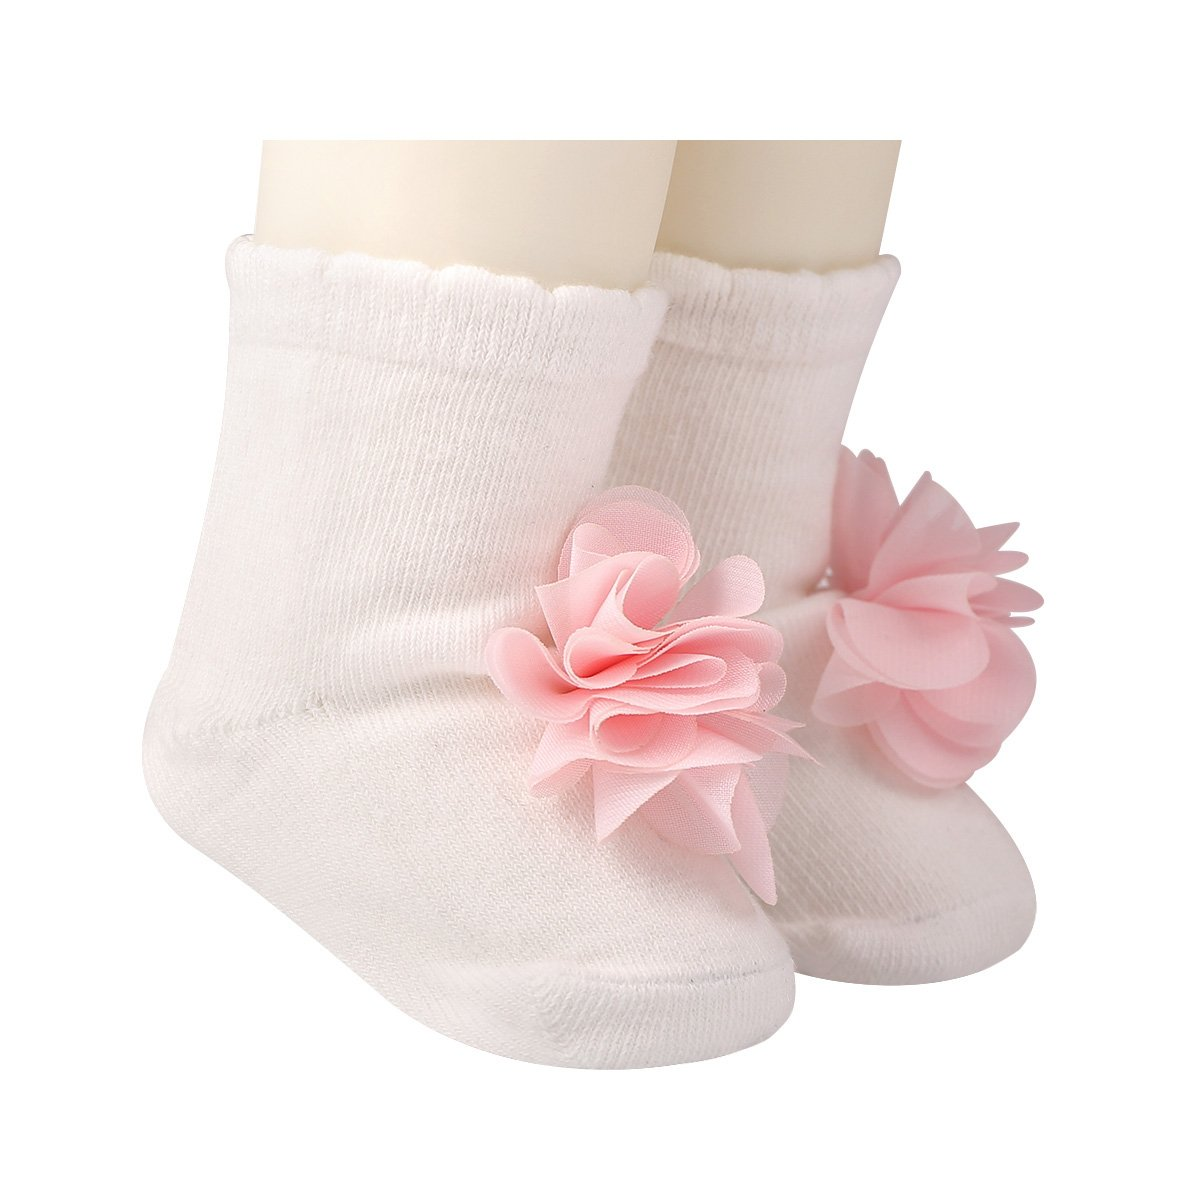 GZMM Baby Girls Socks Cotton Seamless Non-Skid 3Pairs Packs Cute Flower Ornament